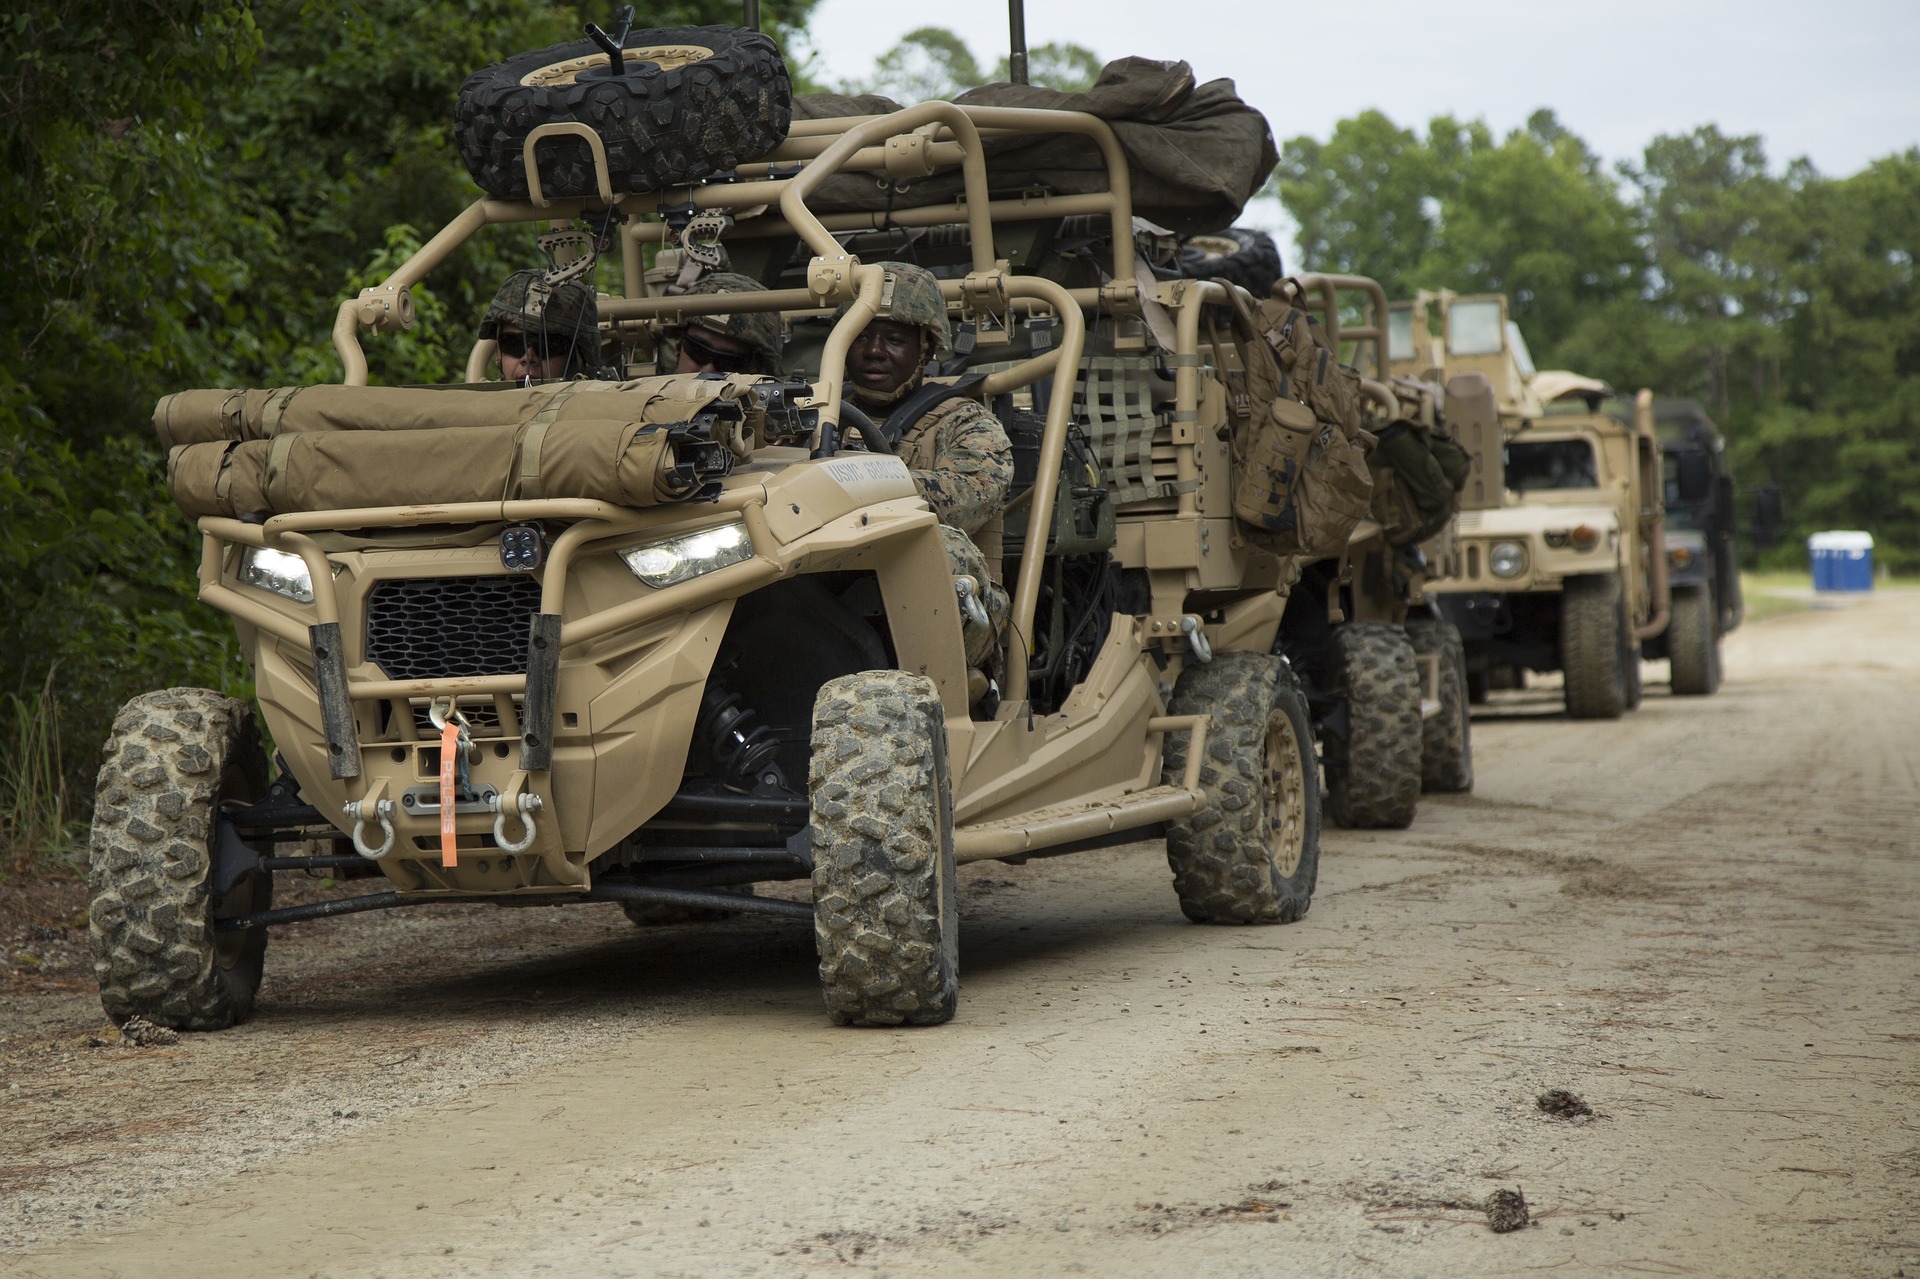 Military Side-By-Side Utility-Tactical-Vehicle